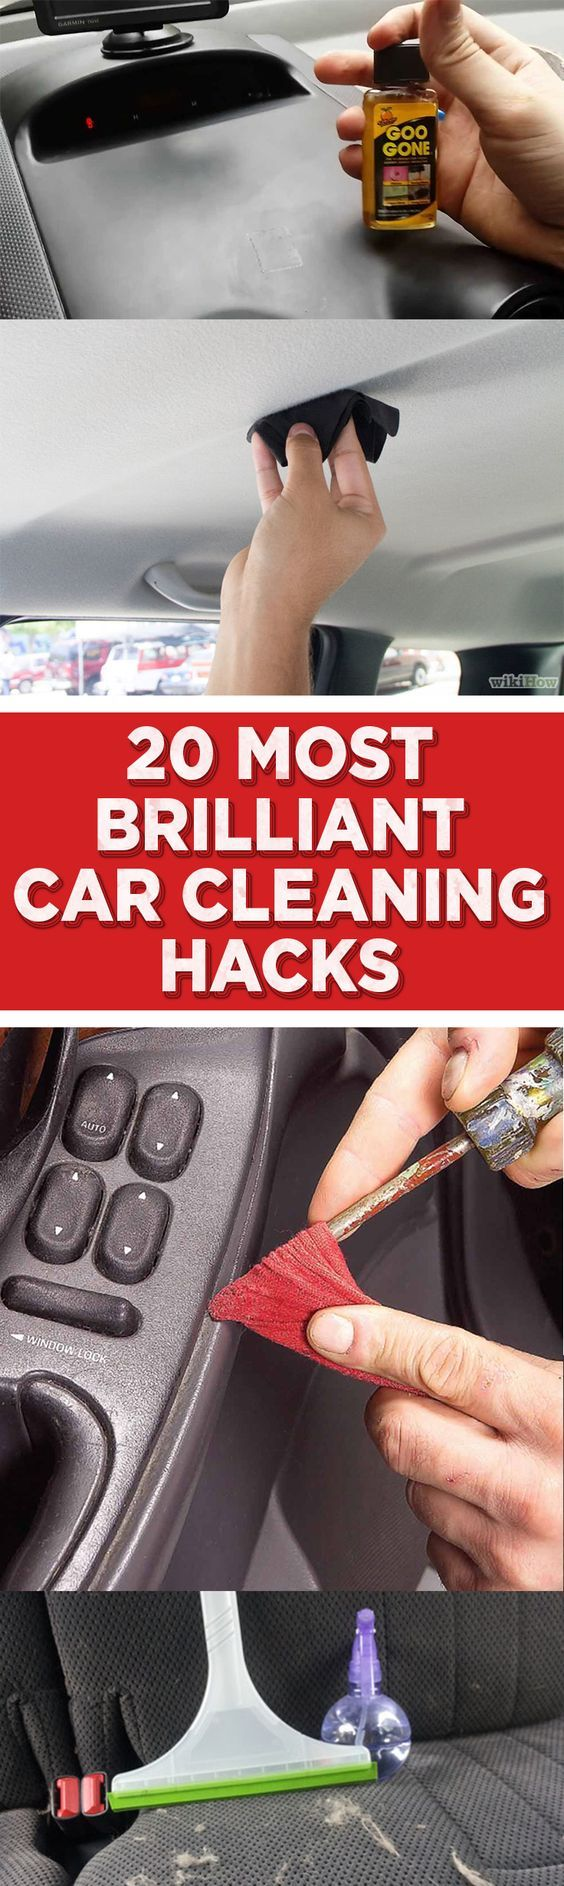 best 25 car upholstery cleaner ideas on pinterest car upholstery cleaner diy cleaning. Black Bedroom Furniture Sets. Home Design Ideas